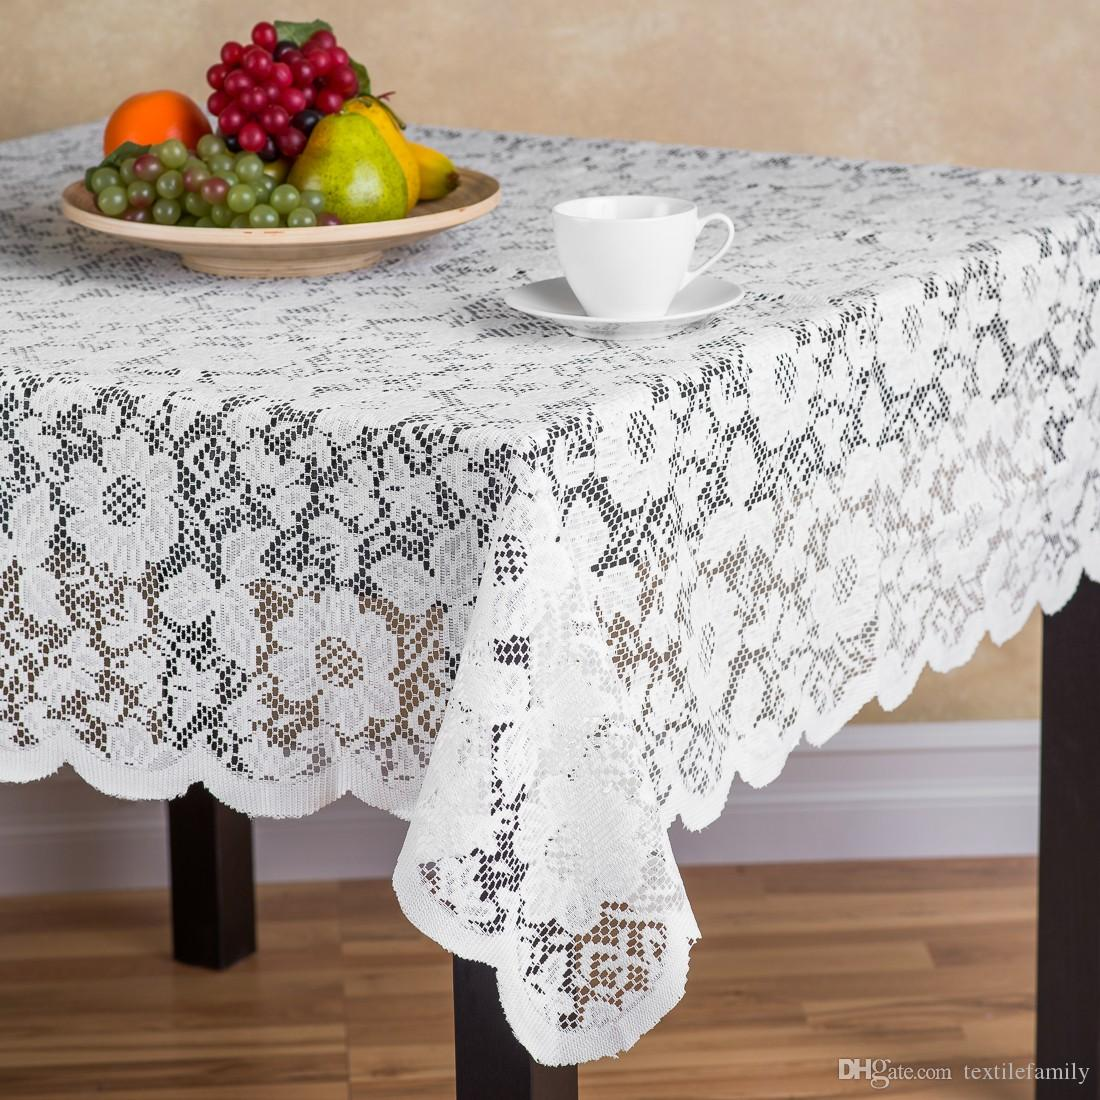 Polyester Round Rose Lace Tablecloths Square Lace Table Cover 54x54inch Or  60inch Round Hot Jacquard Sunflower Table Cloth Spring Tablecloths Round  Table ...